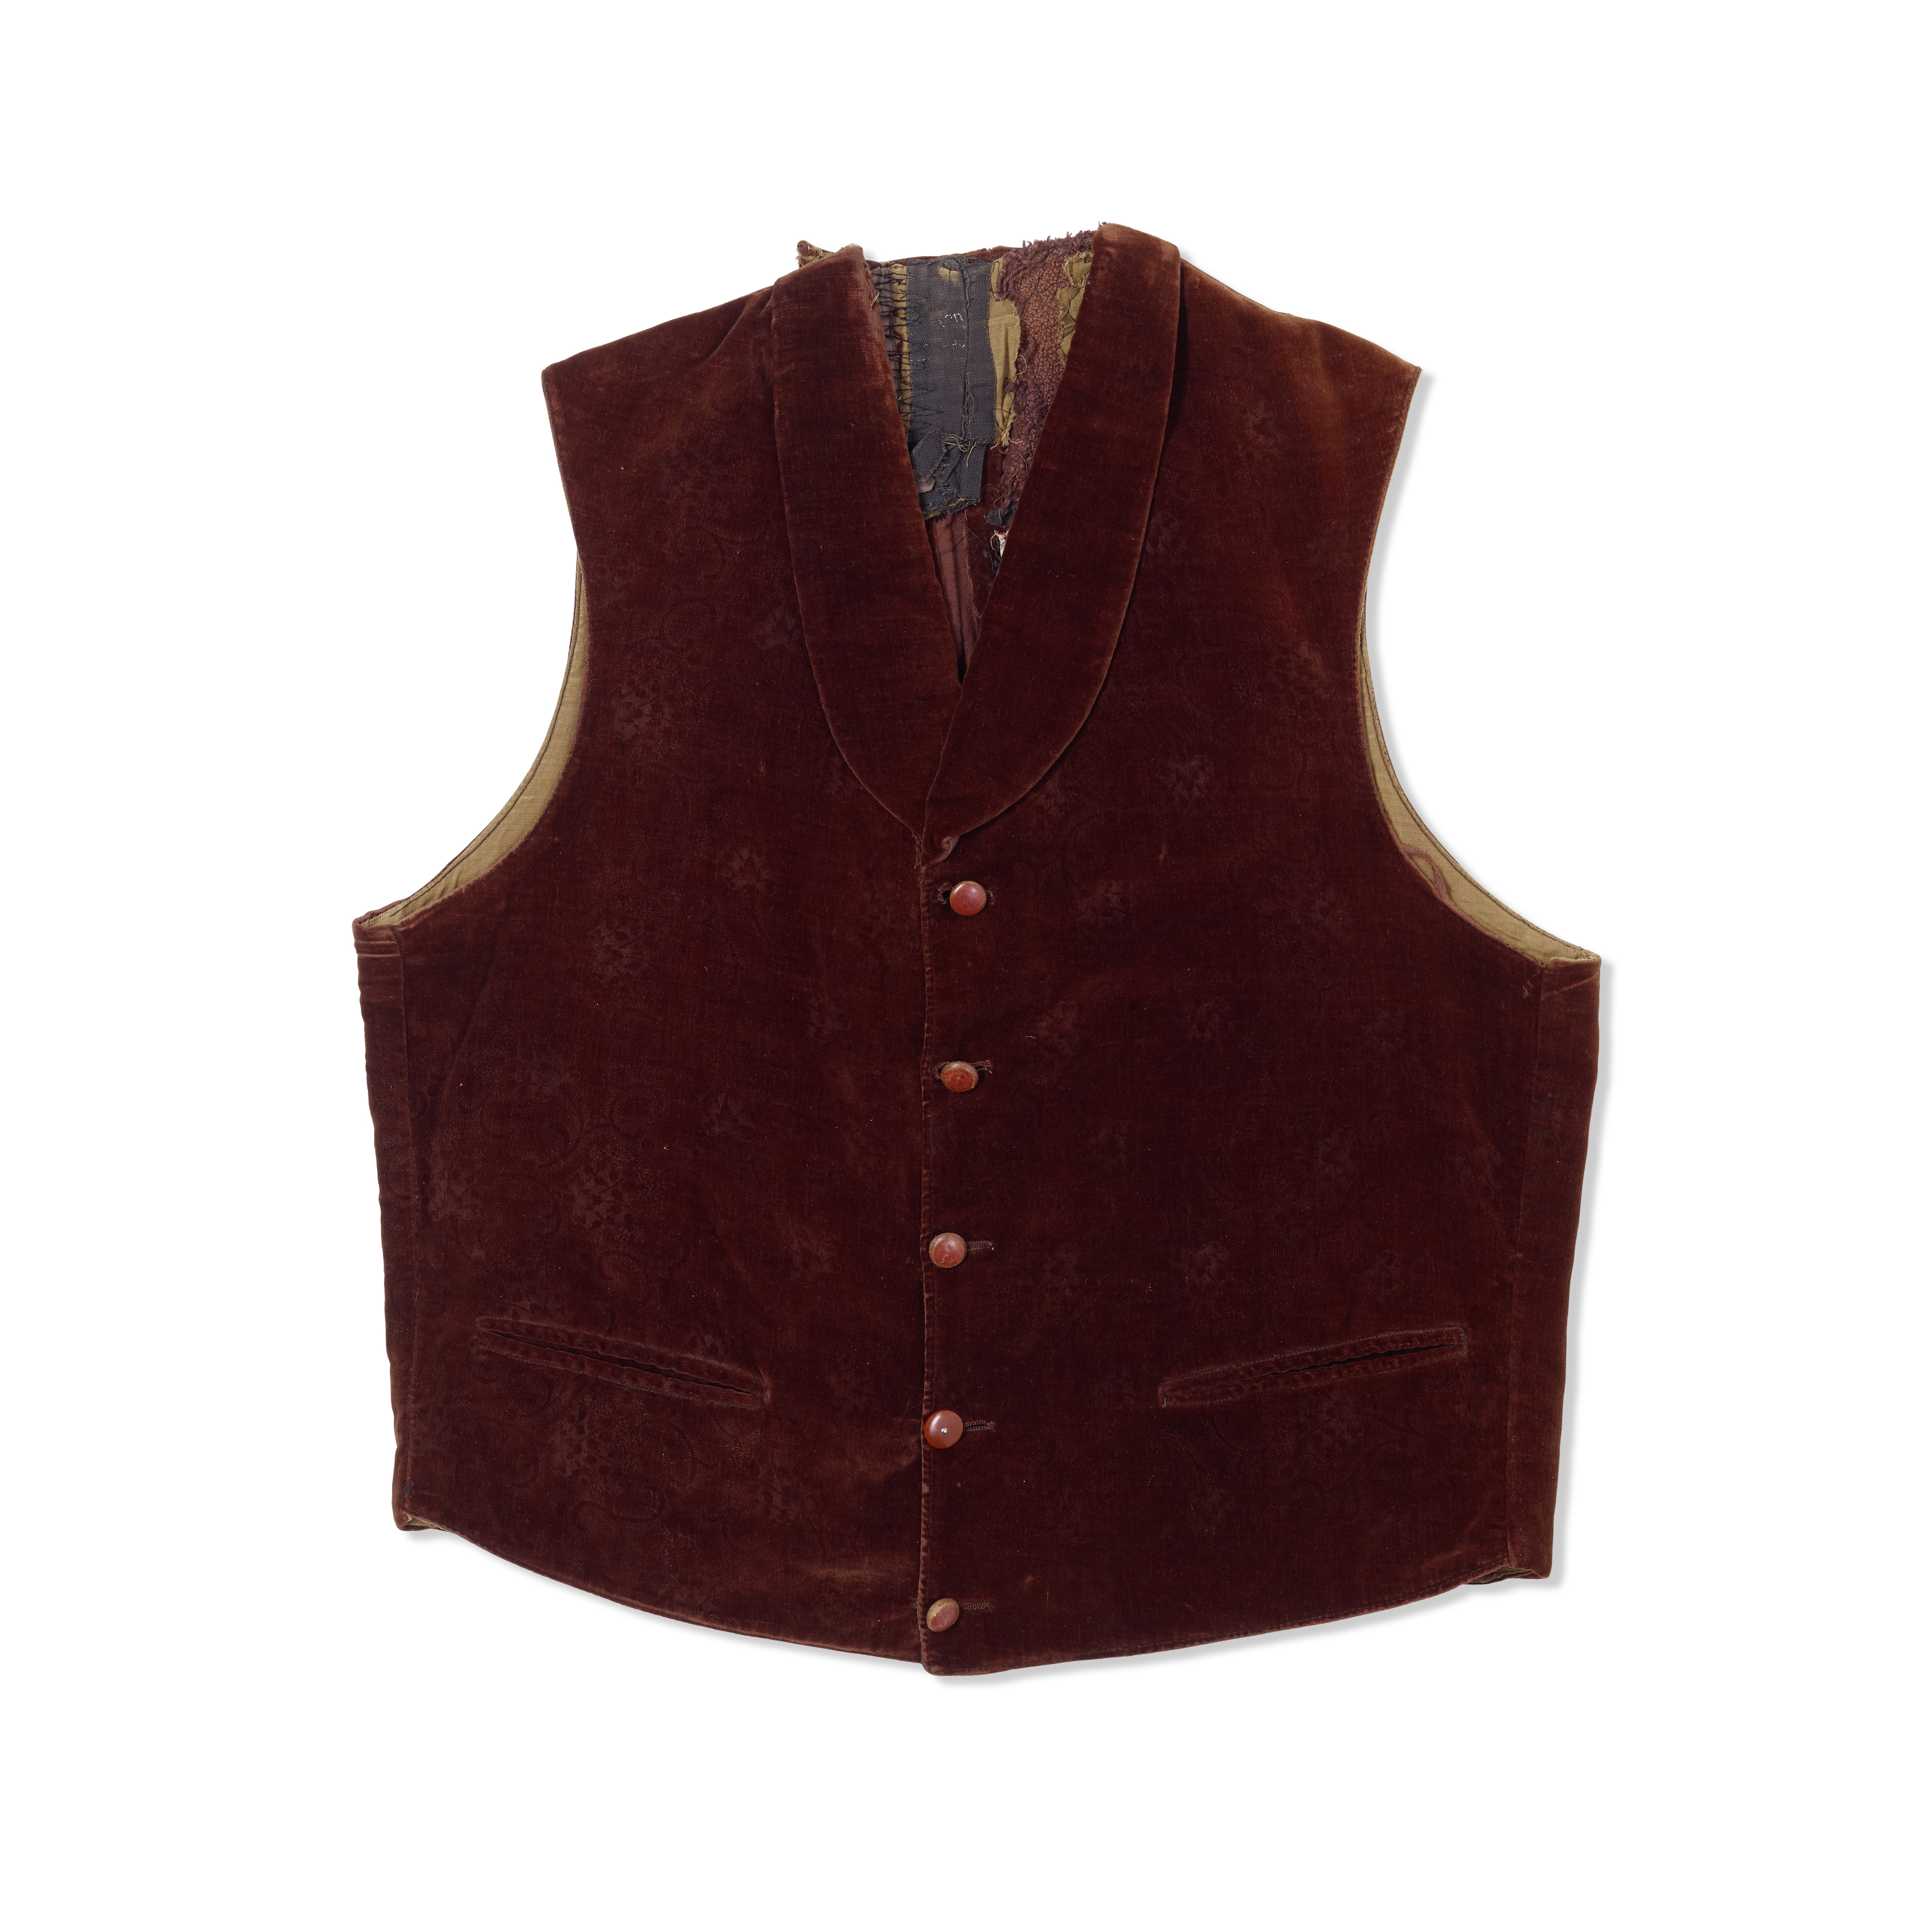 A Harry Davenport vest from Gone With the Wind